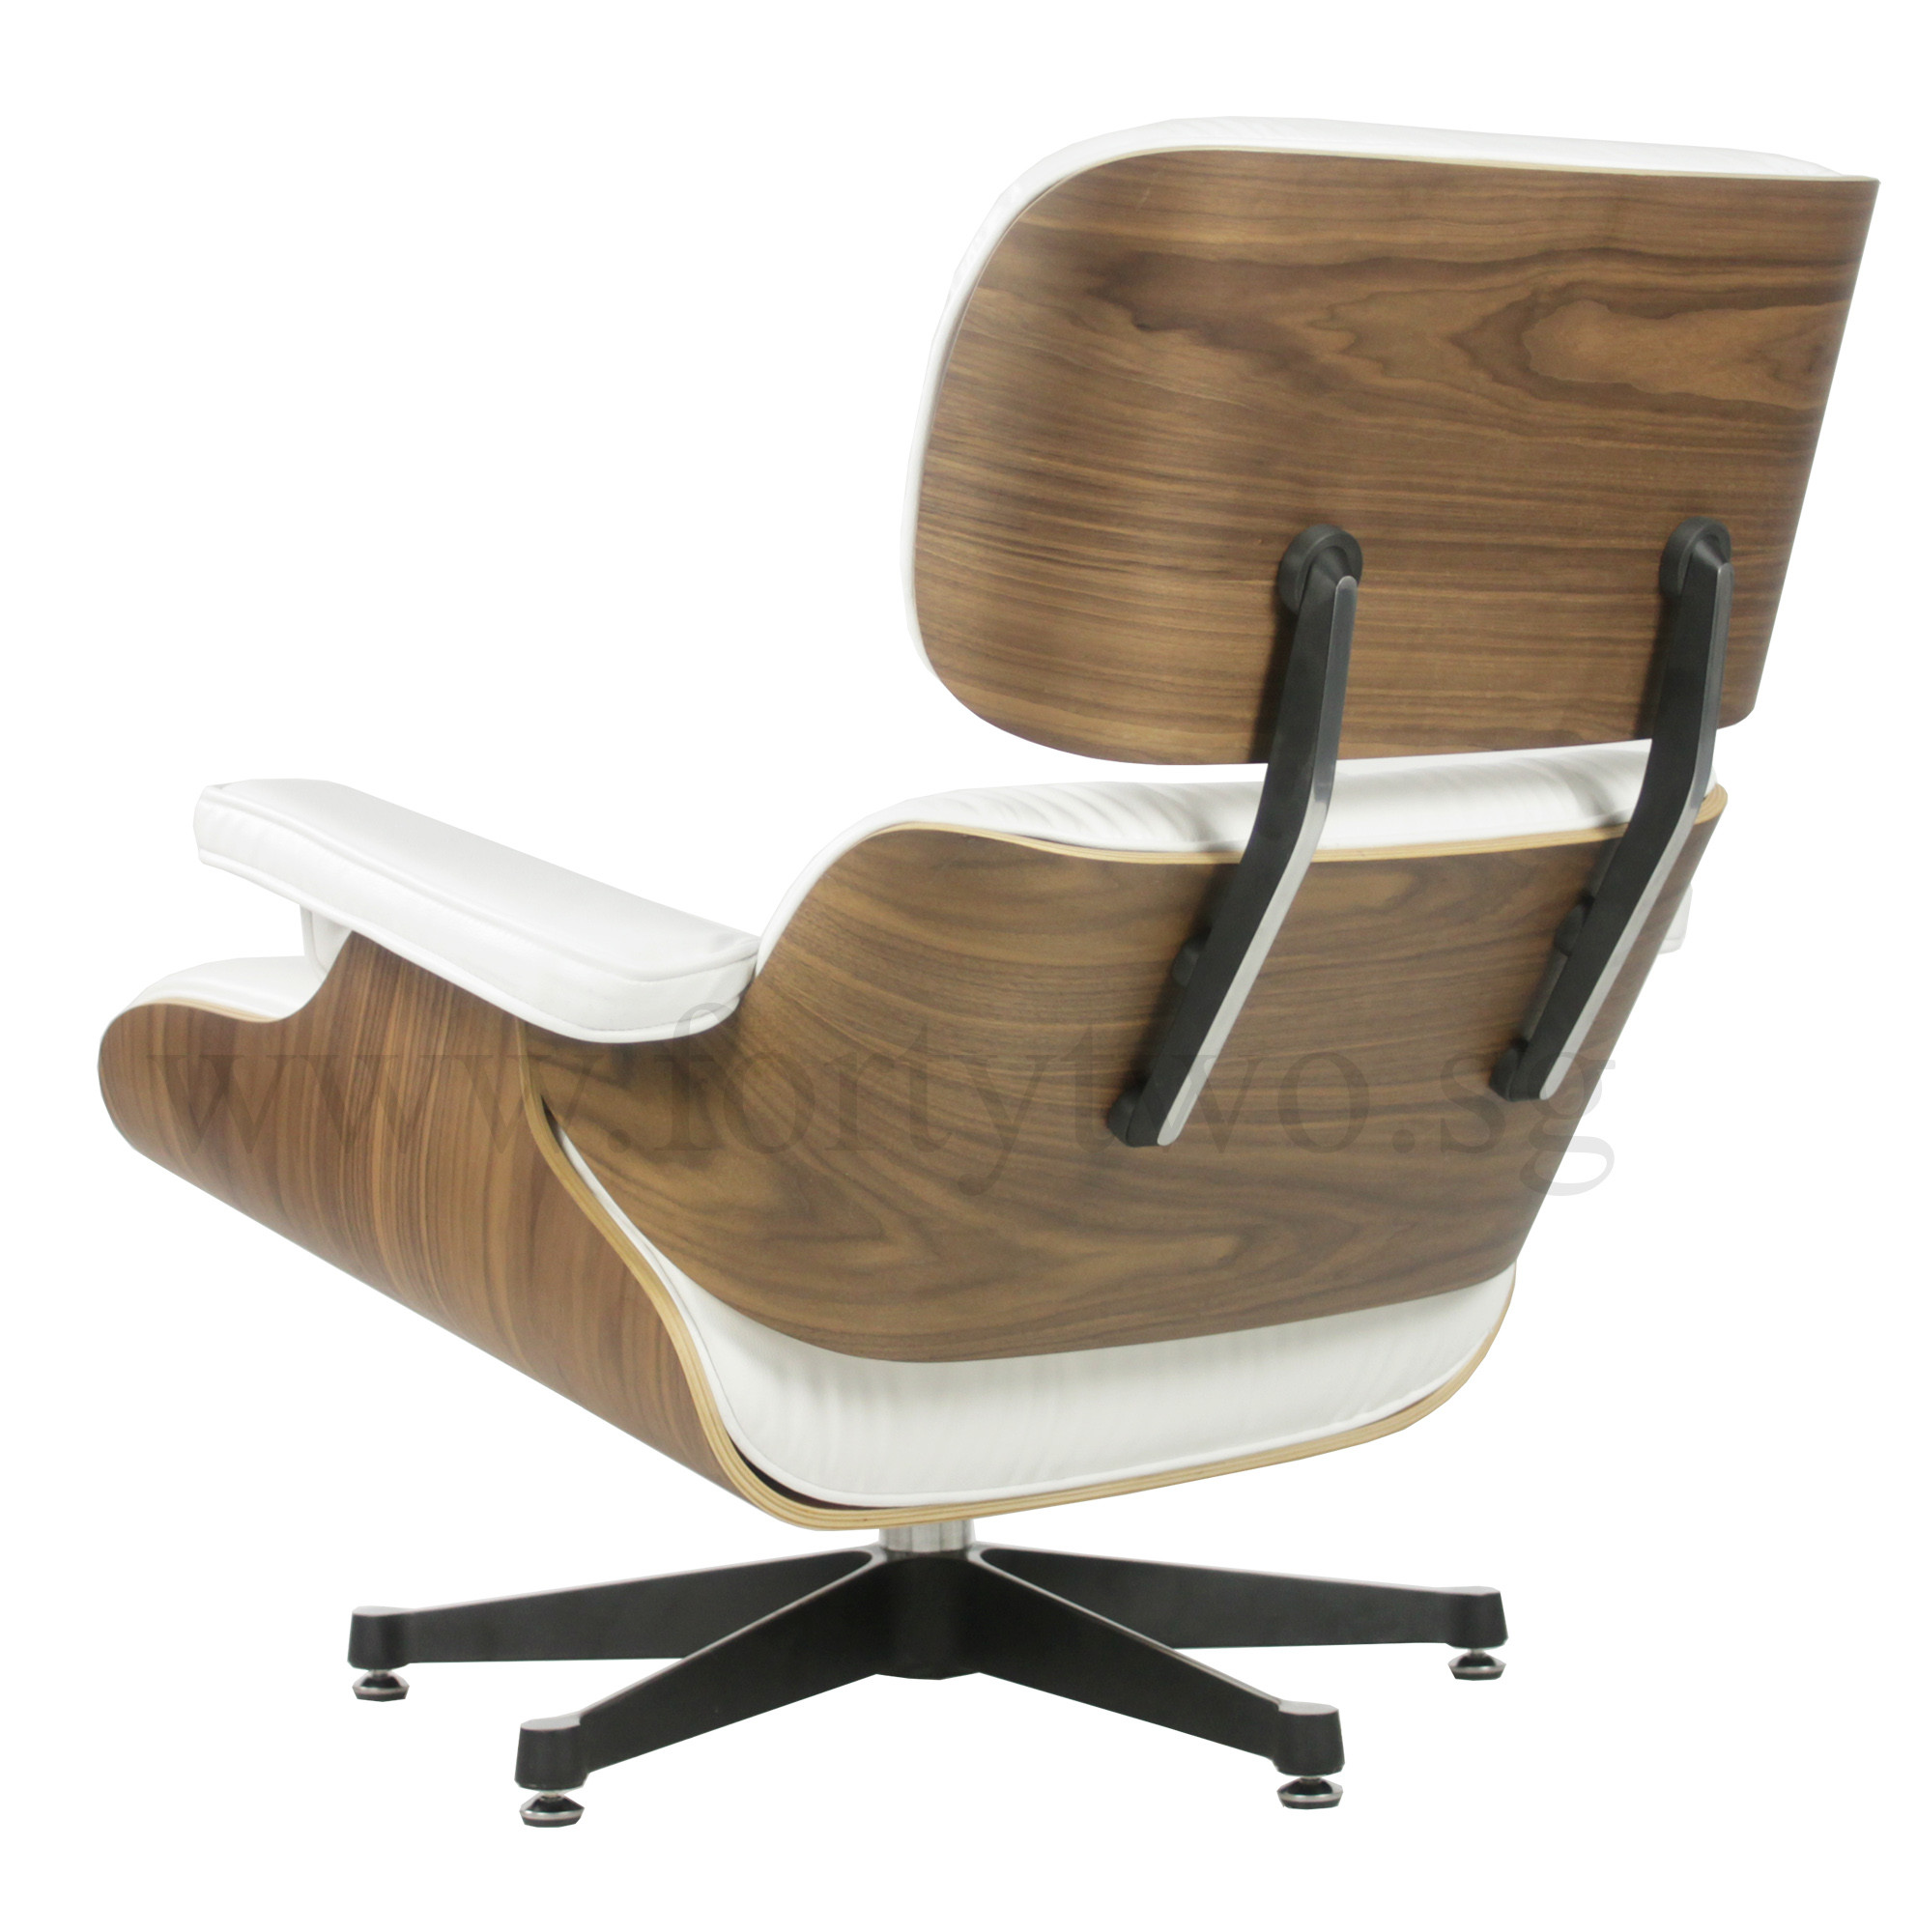 Eames Lounge Chair Reproduction Eames Replica Lounge Chair (white Leather) | Furniture